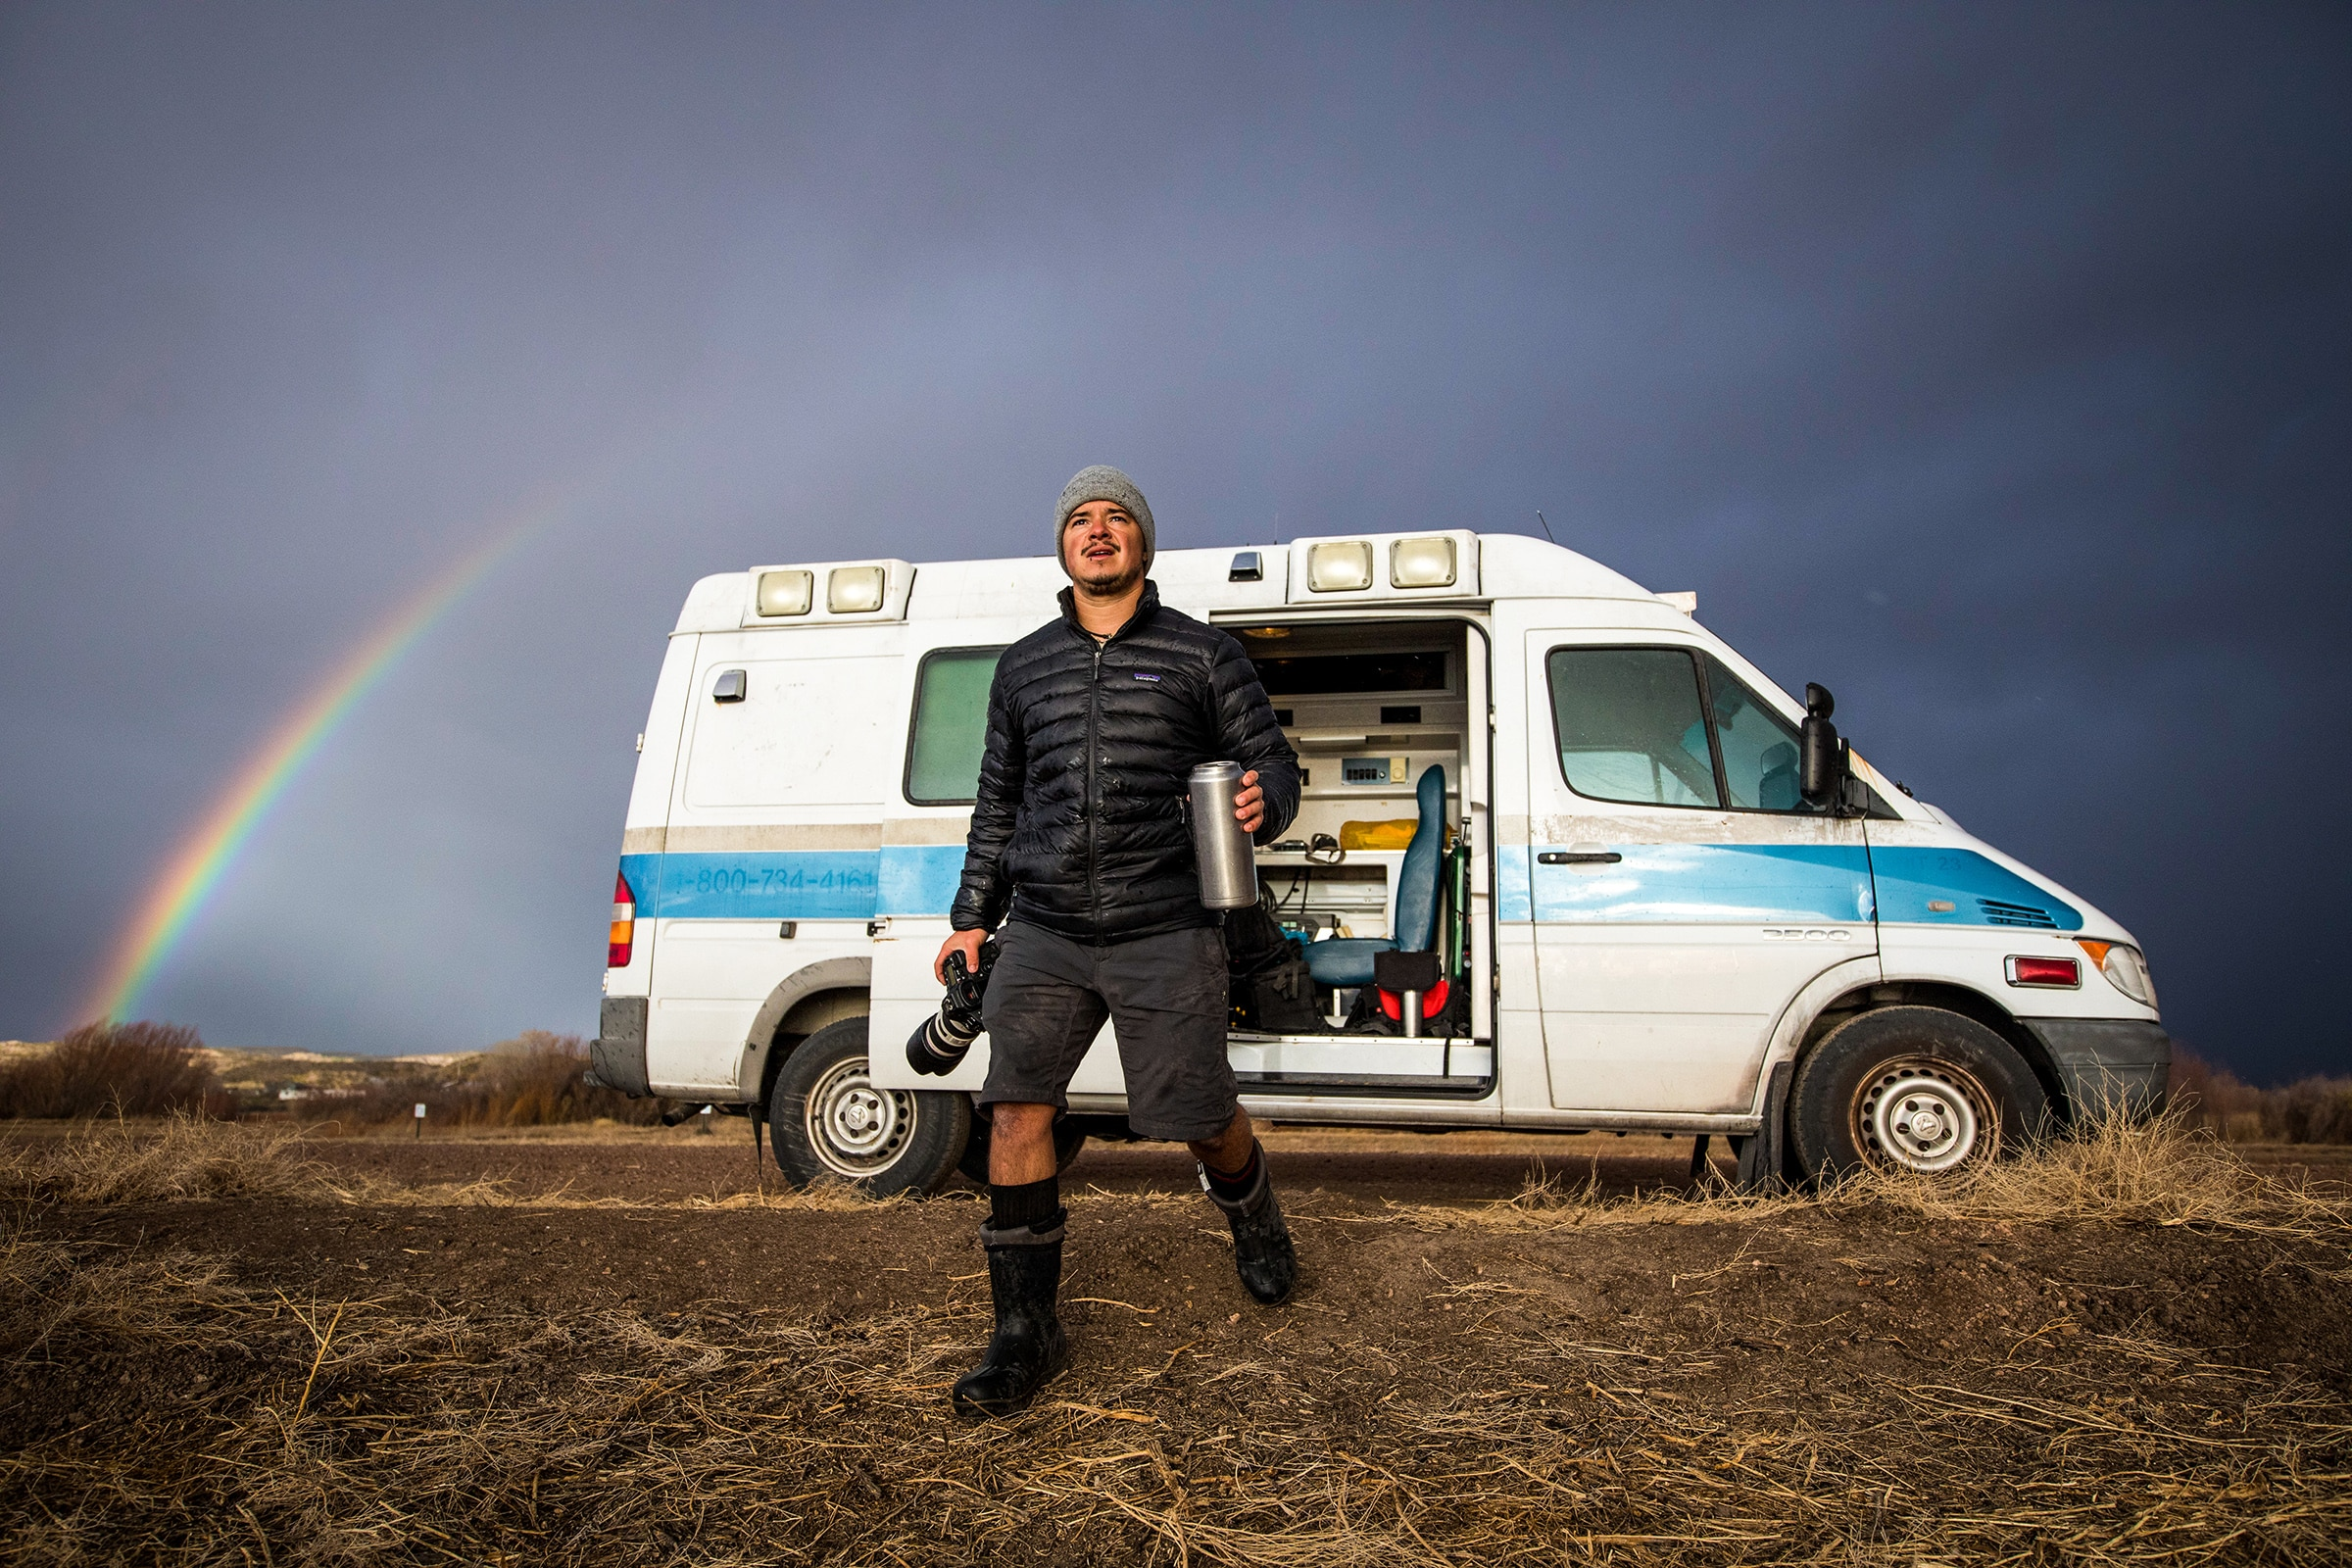 """DeAndrade and his Comfort Theory crew traveled the United States in 2016 in search of diverse, iconic and unexpected animal species for season 1 of """"Untamed with Filipe DeAndrade."""" Their home on the road was """"Florence the Manbulance,"""" a 2006 Dodge ambulance converted into a camper."""